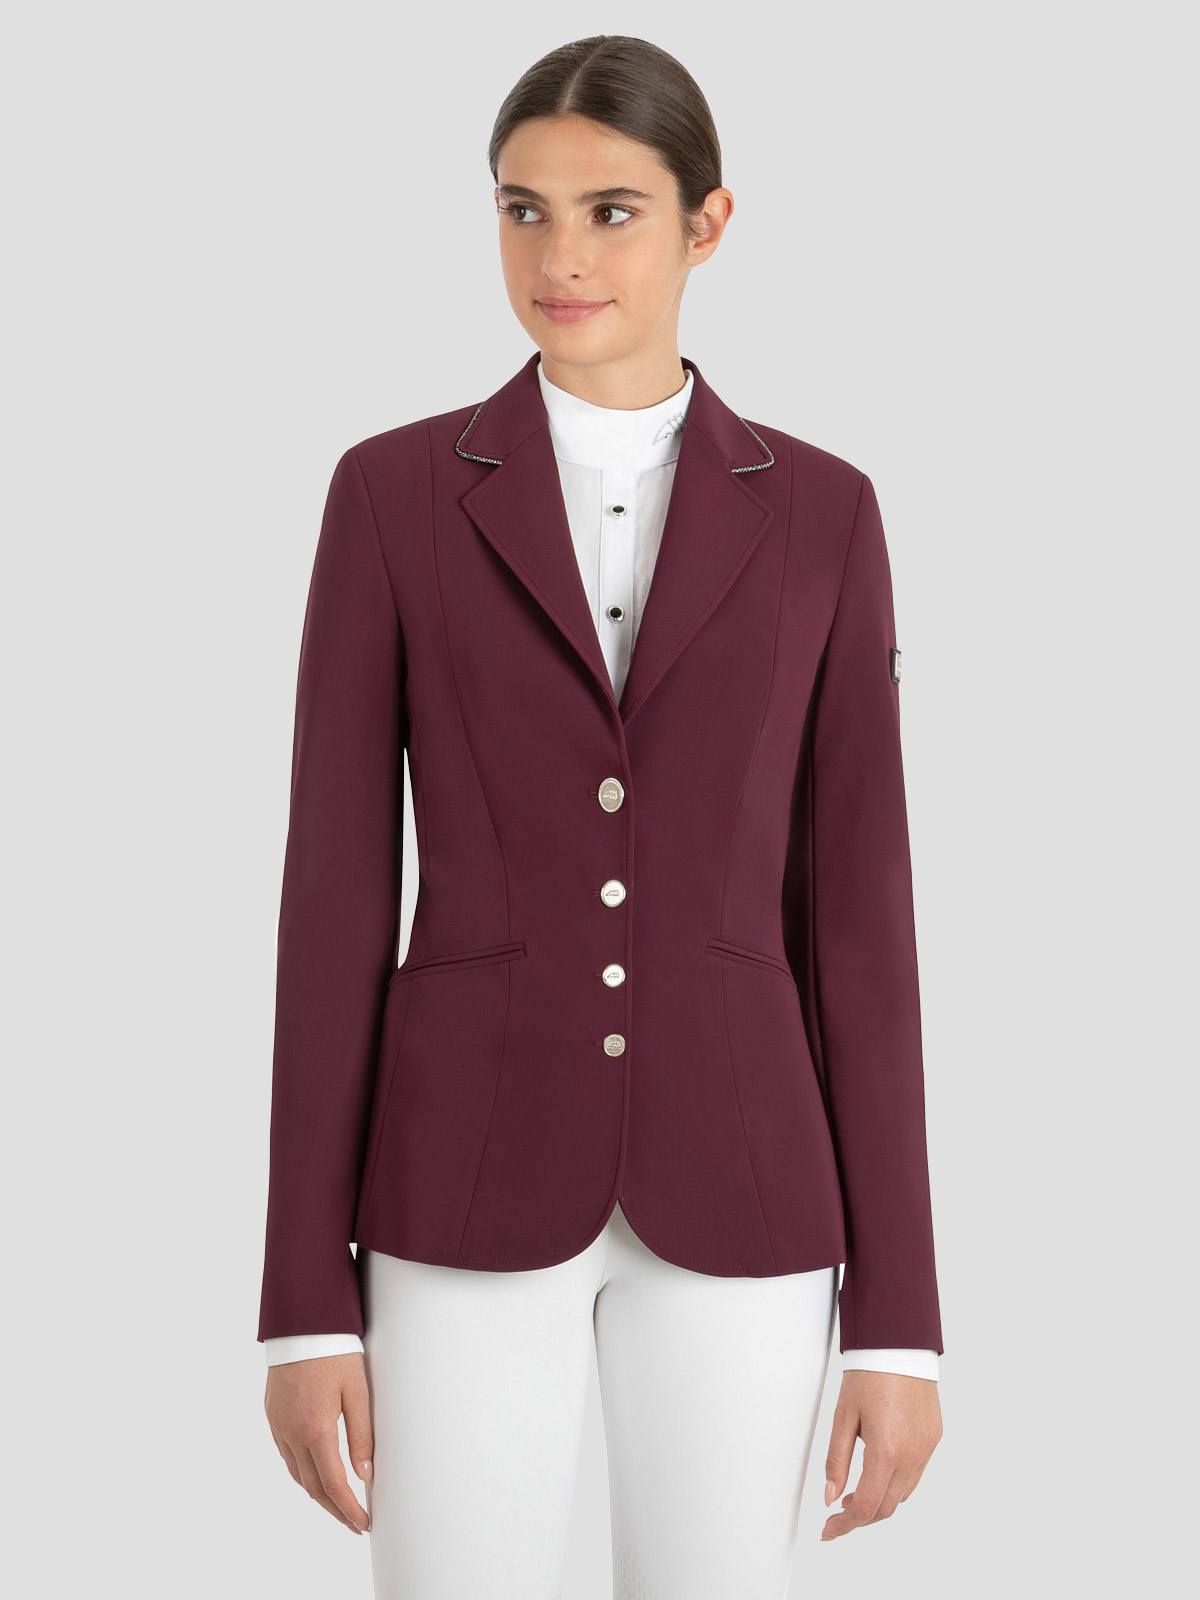 GWENTYG WOMEN'S SHOW COAT 1